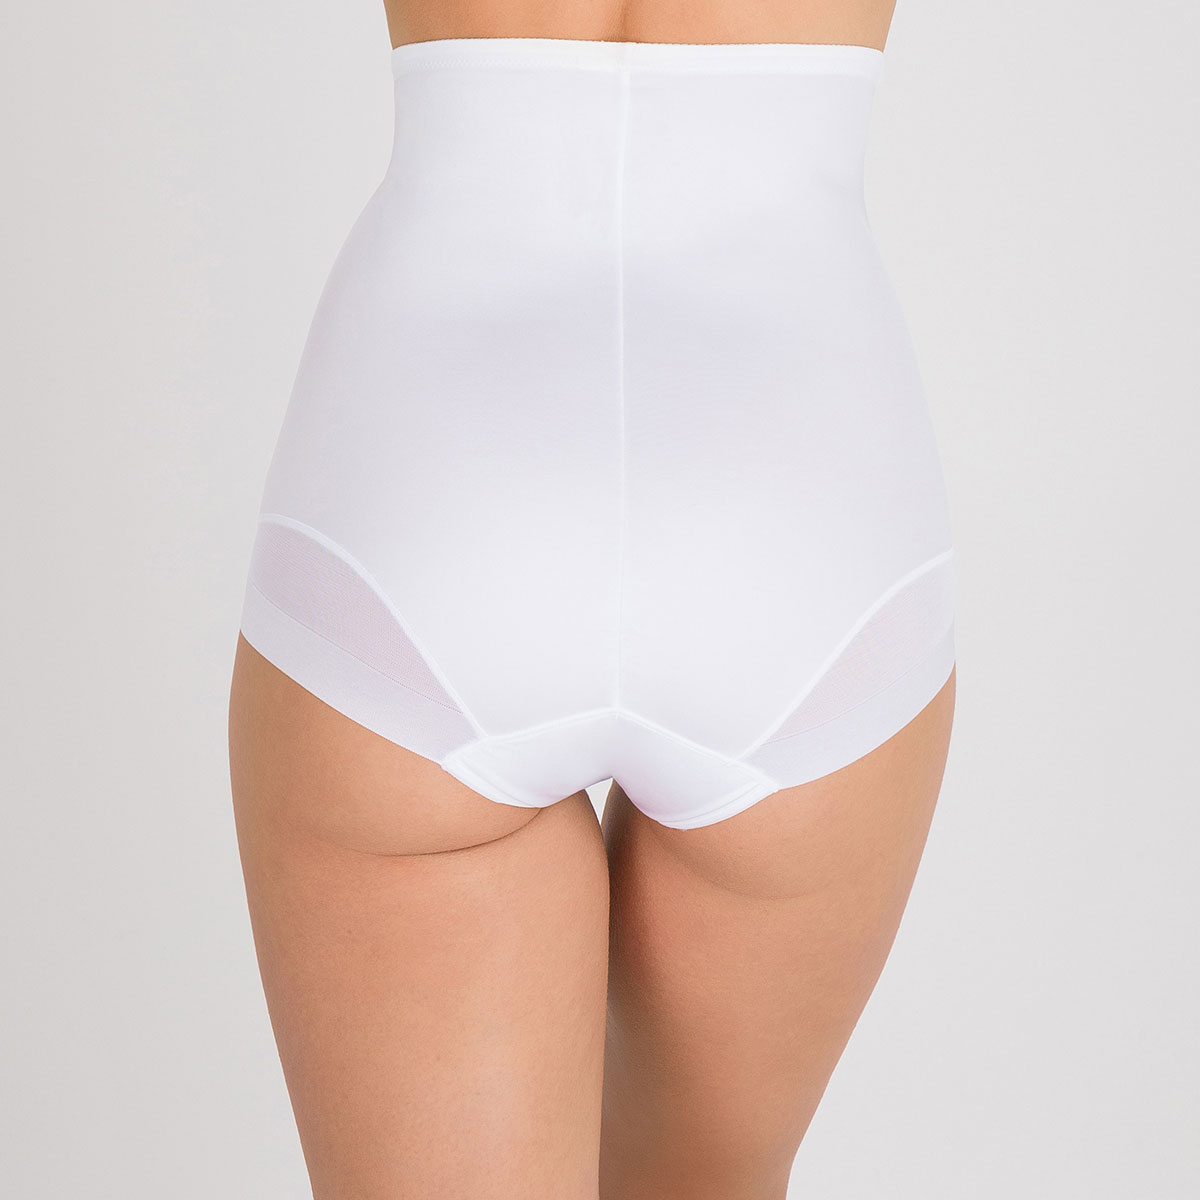 Gaine serre-taille blanche - Perfect Silhouette-PLAYTEX